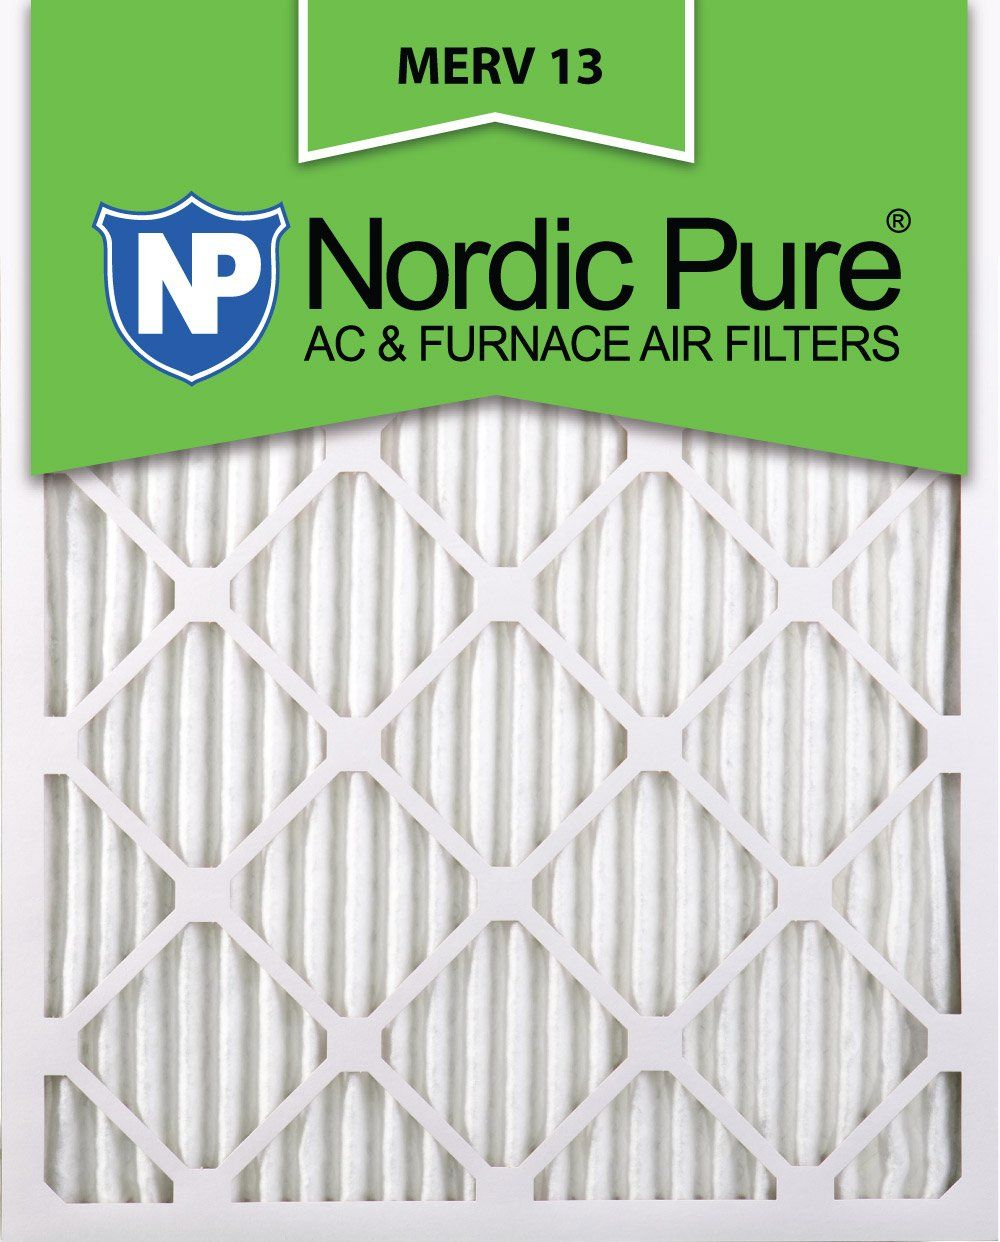 Nordic Pure 10x20x1 MERV 13 Pleated AC Furnace Air Filters